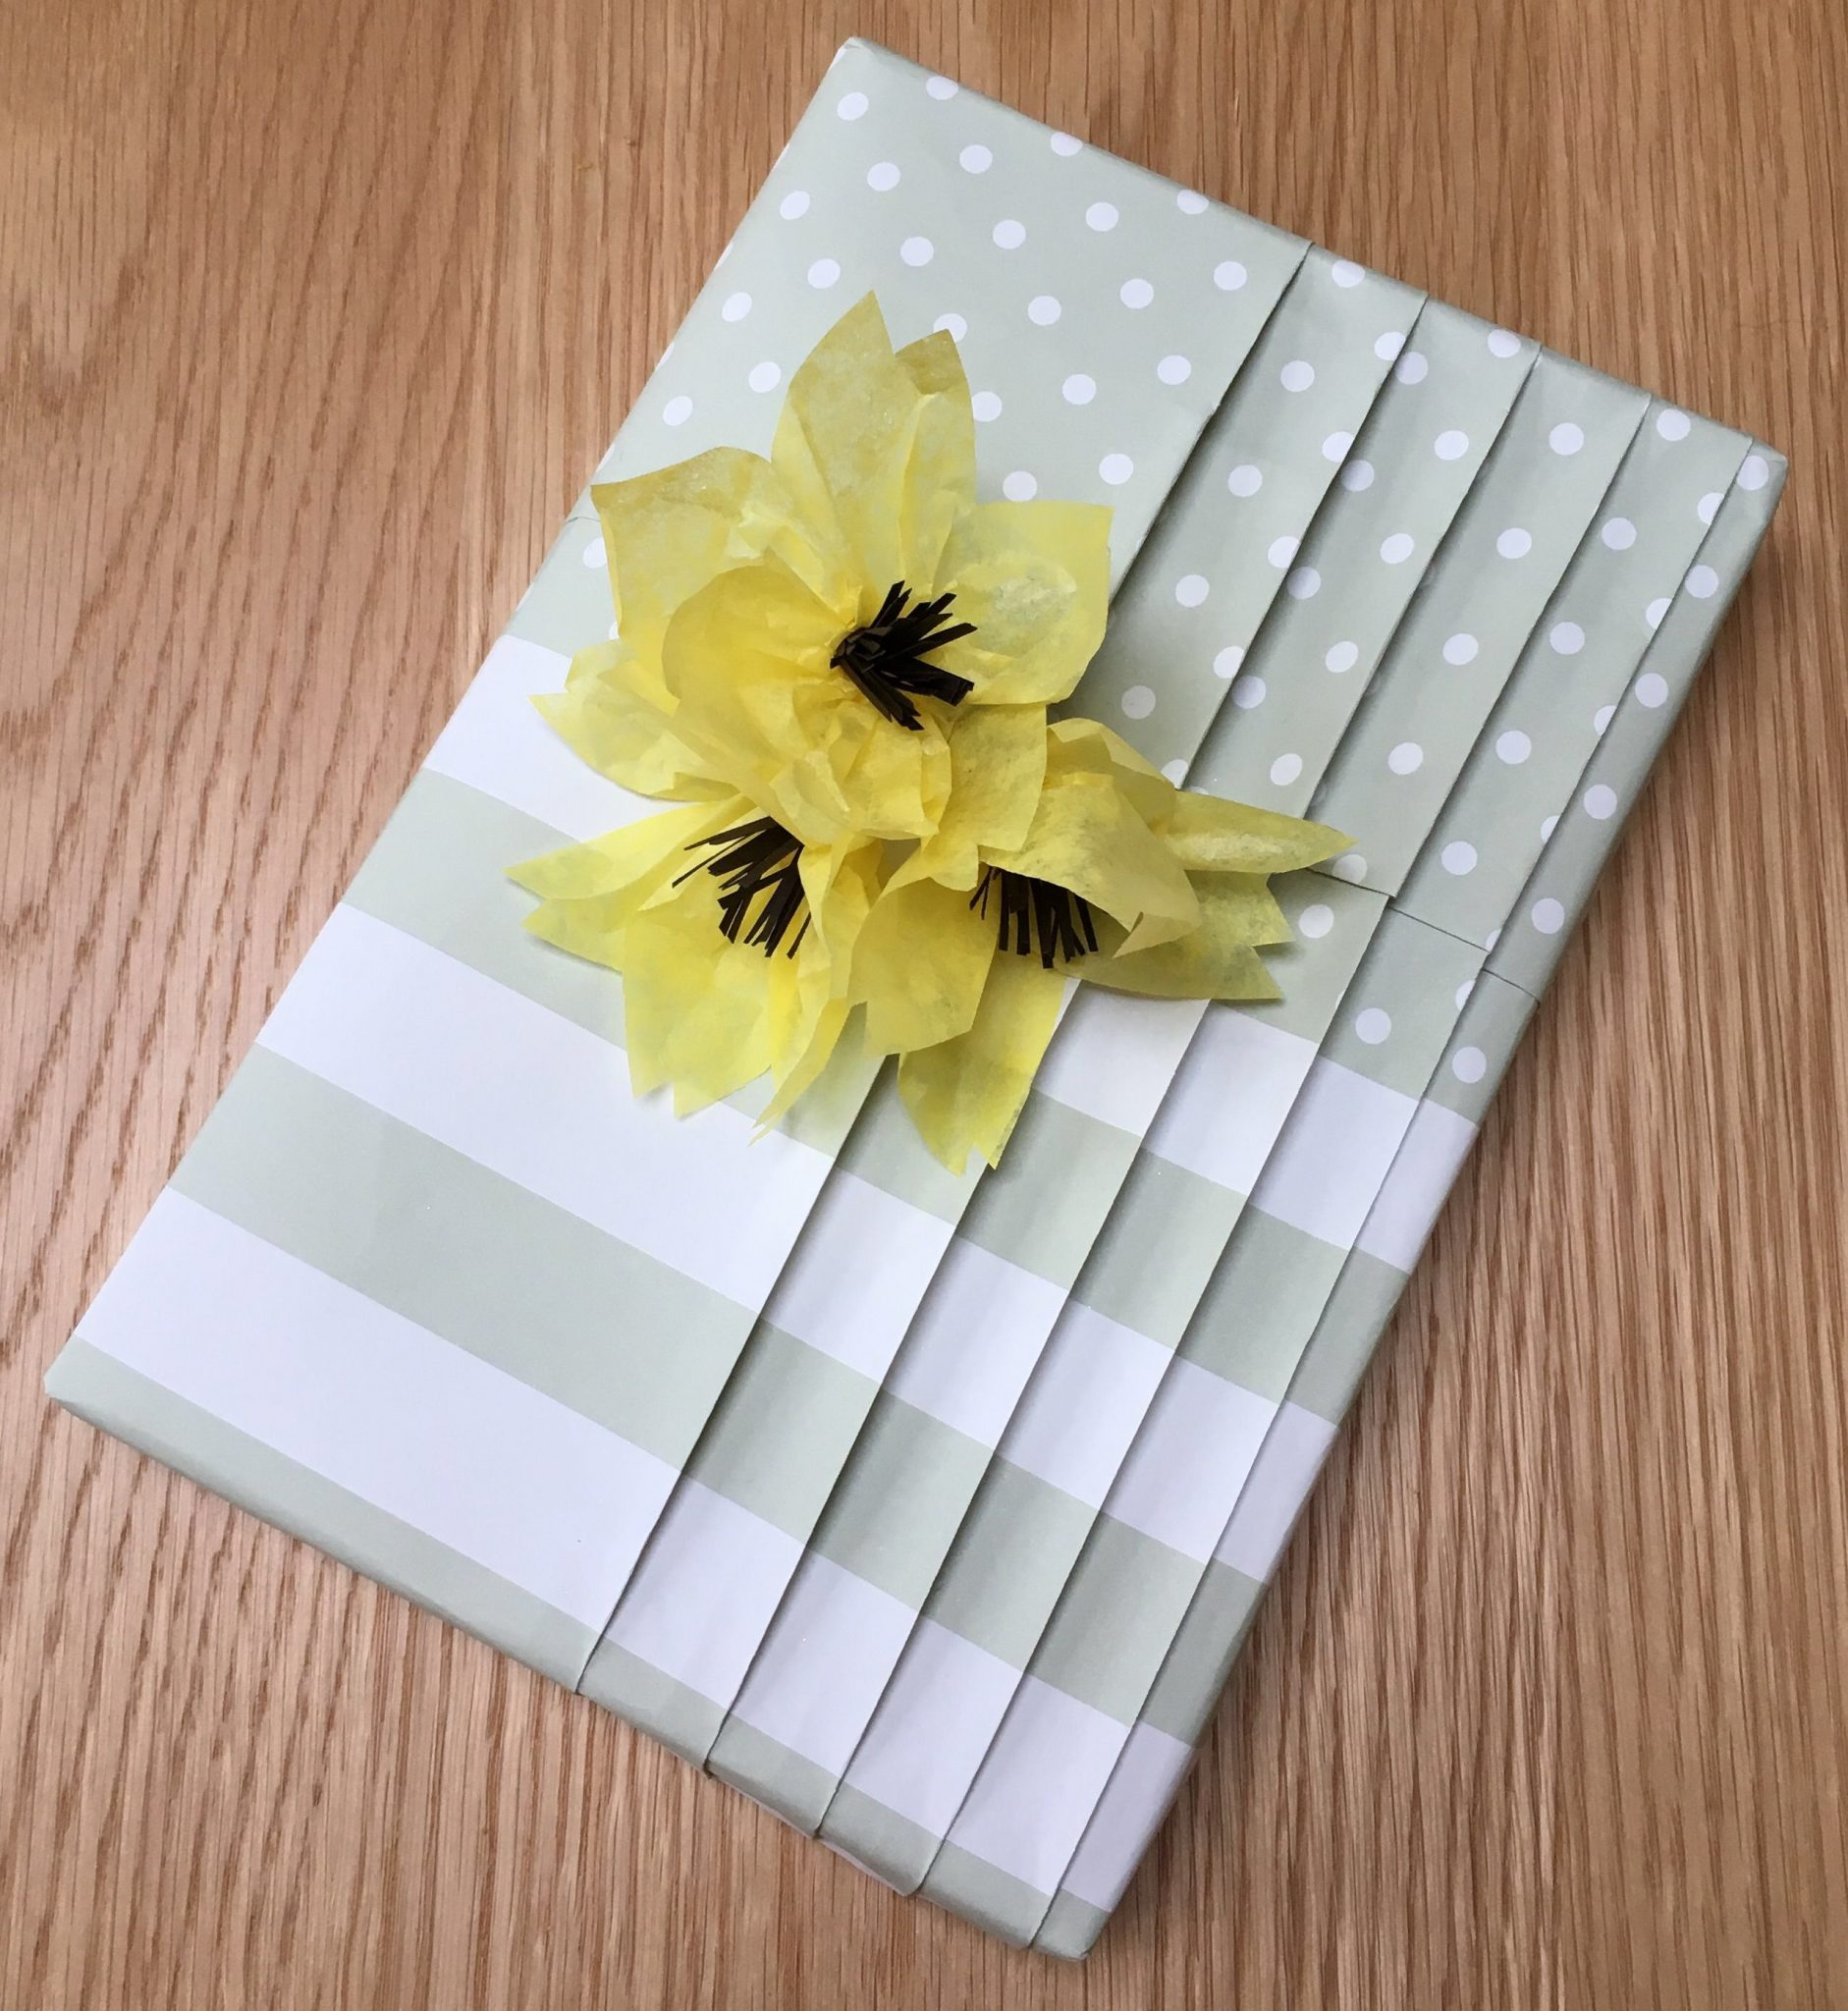 Japanese pleating with a pocket using Jane Means giftwrap with decorative paper flowers